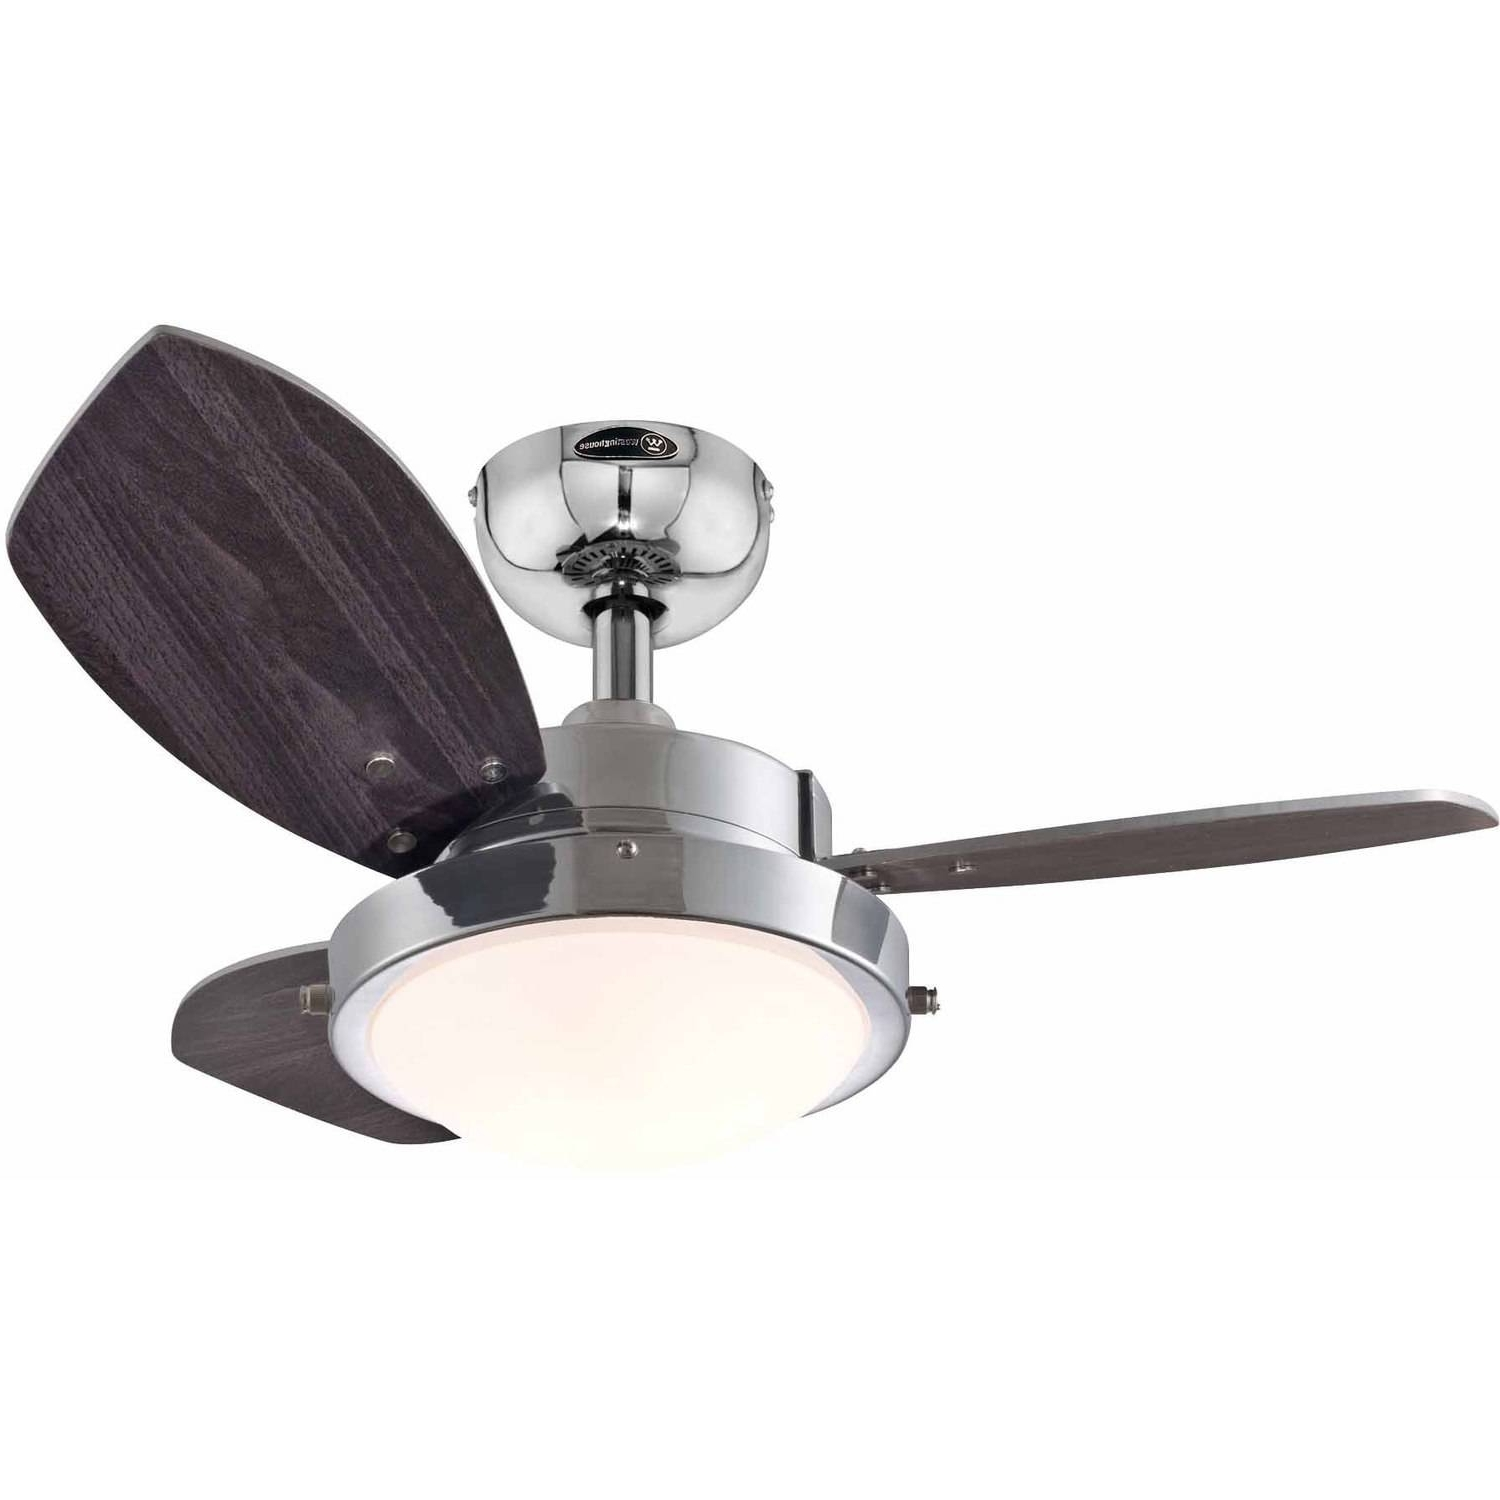 "Outdoor Ceiling Fan With Brake For Fashionable Westinghouse 7224300 24"" Quince Reversible Indoor Ceiling Fan (View 13 of 20)"